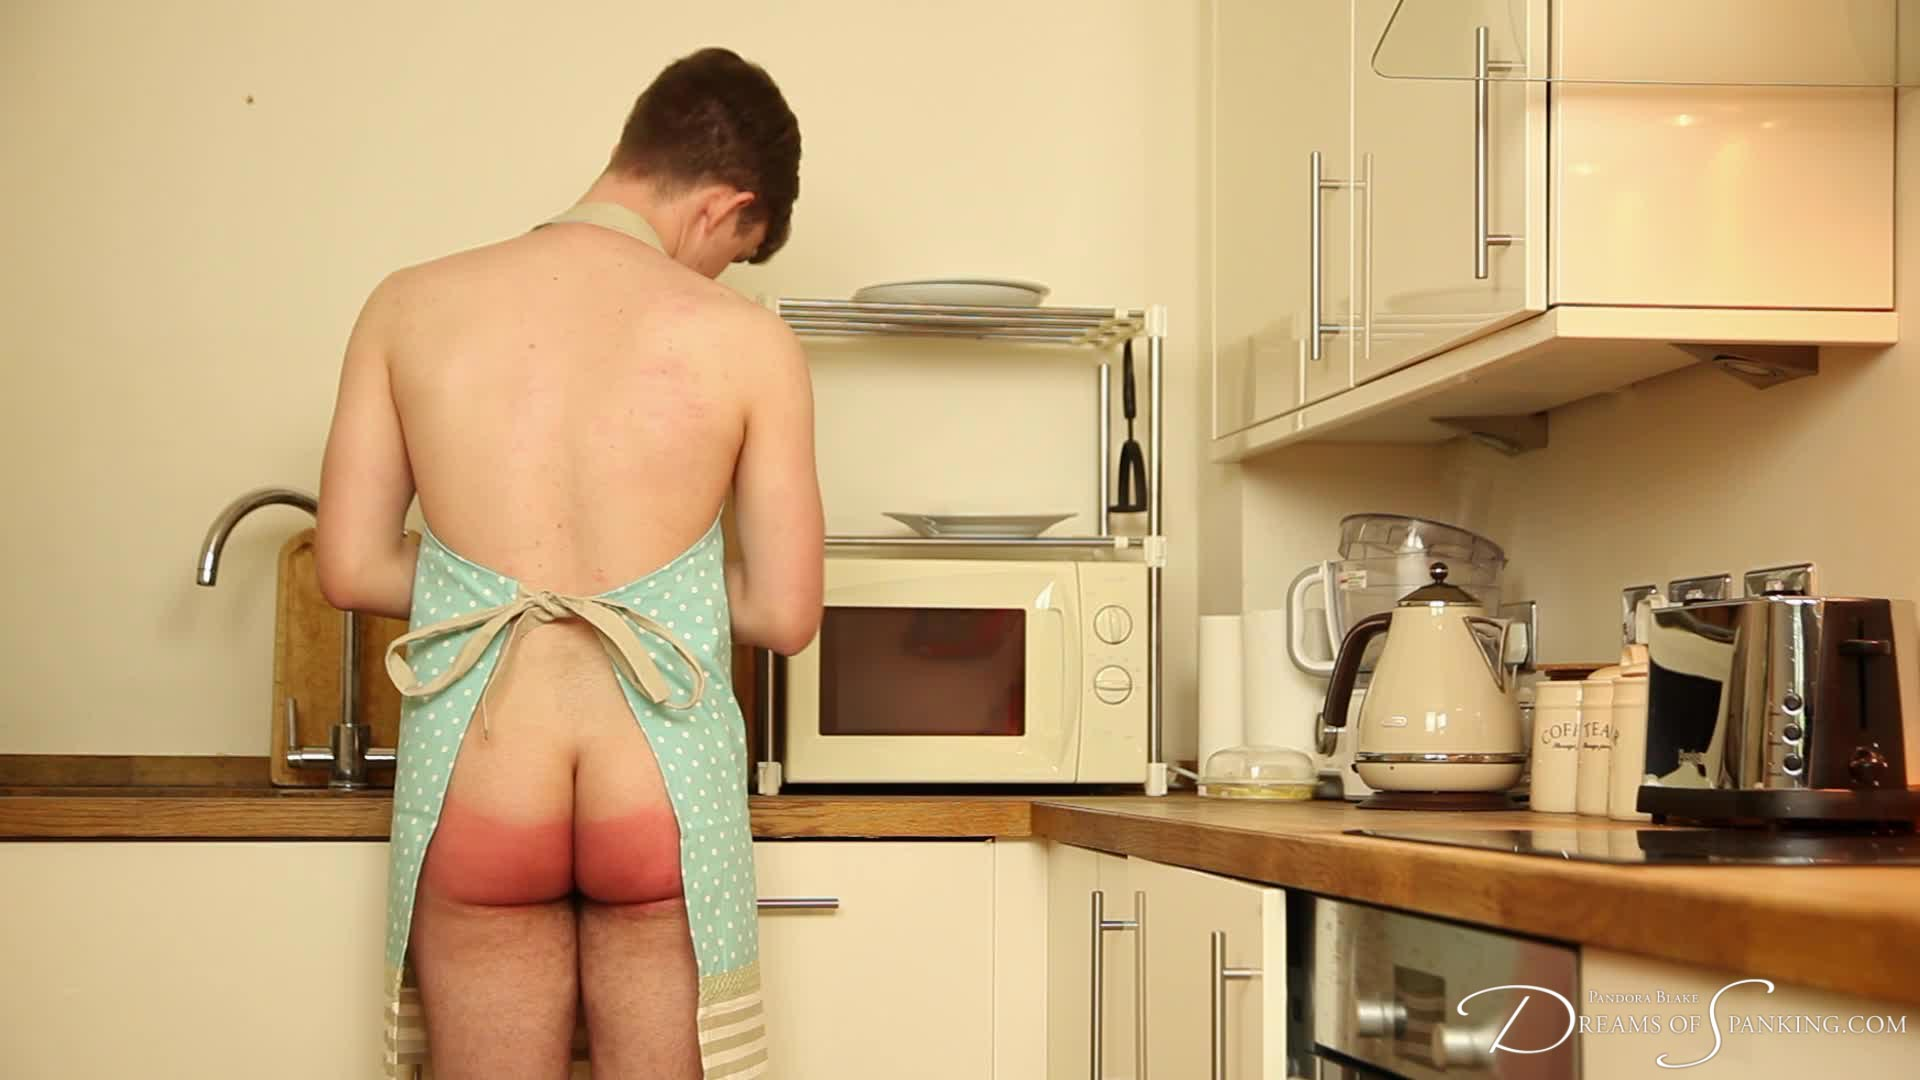 Tai Crimson paddled in the kitchen by Pandora Blake in 'Houseboy - the Film'